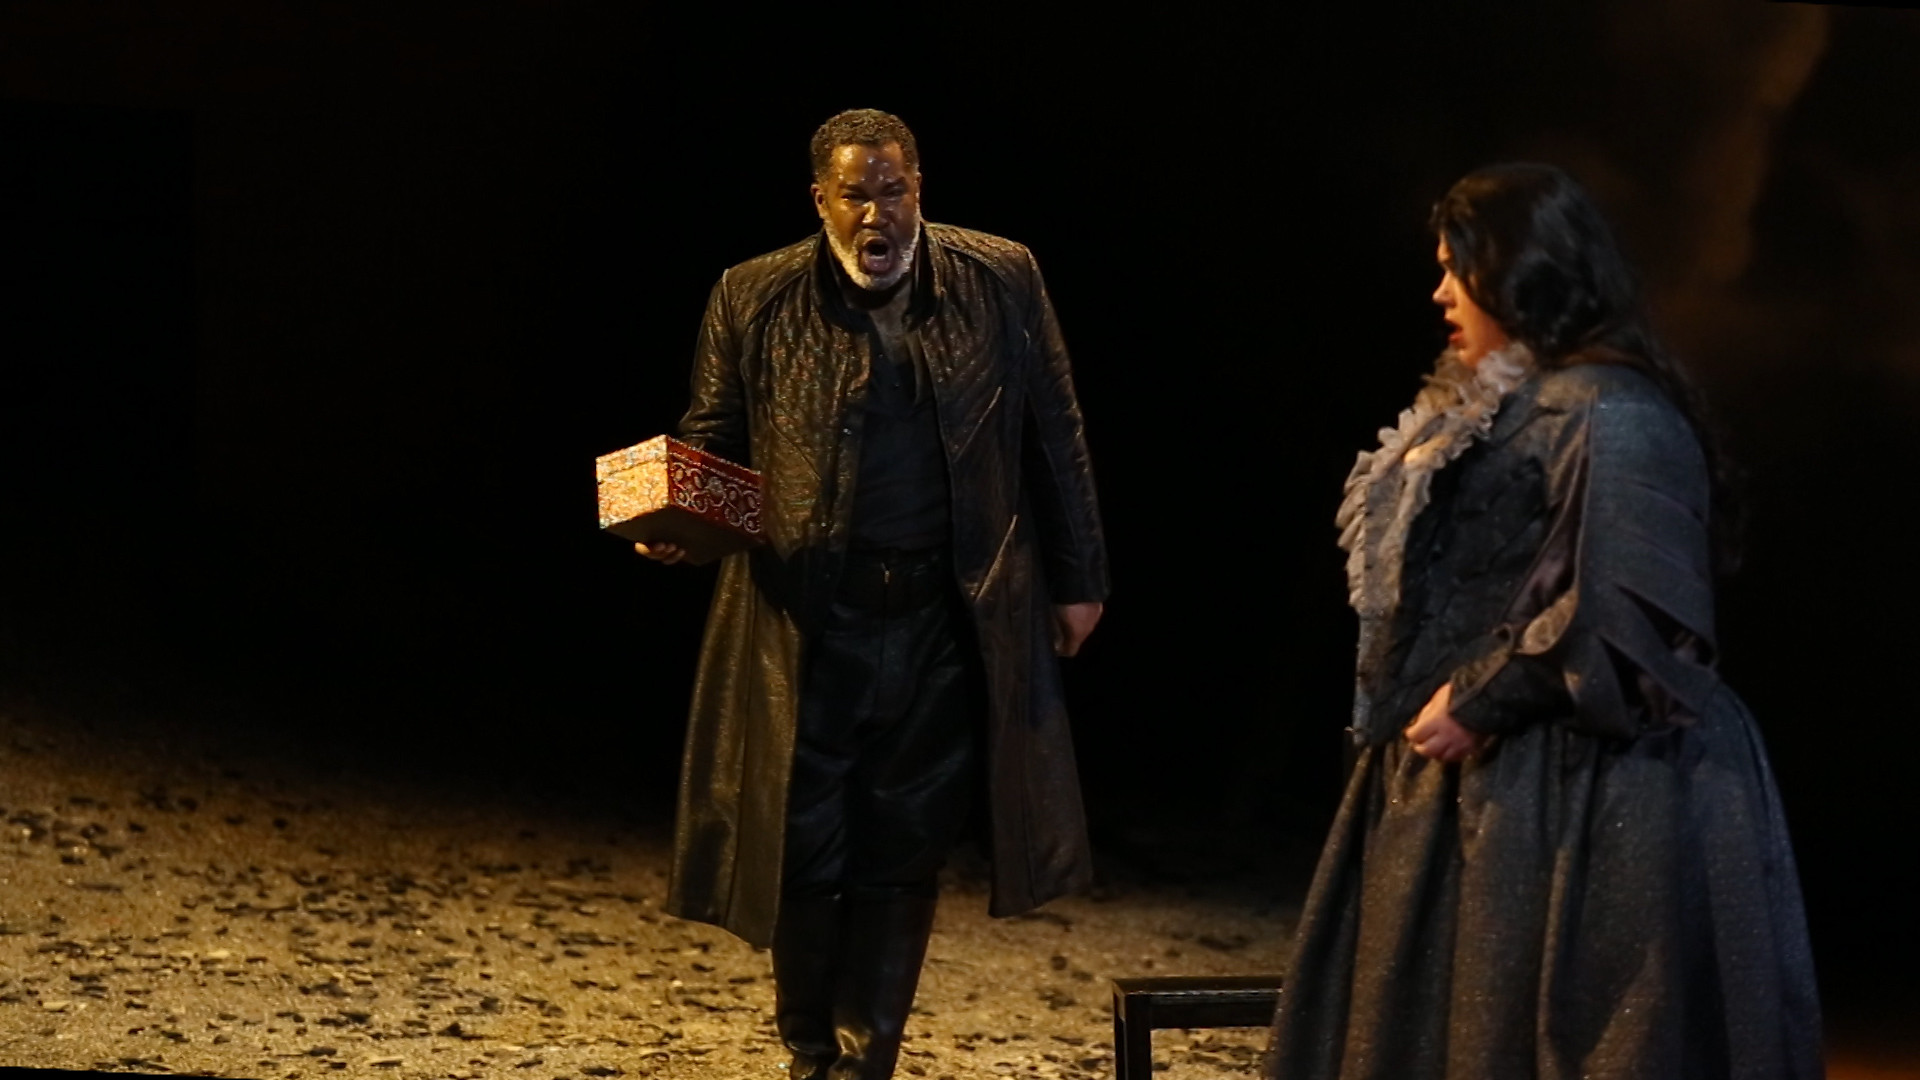 Eric Owens - With a voice and stage presence as big as his personality, Eric Owens is among the most celebrated bass-baritones in the opera world.Season 1, Episode 8